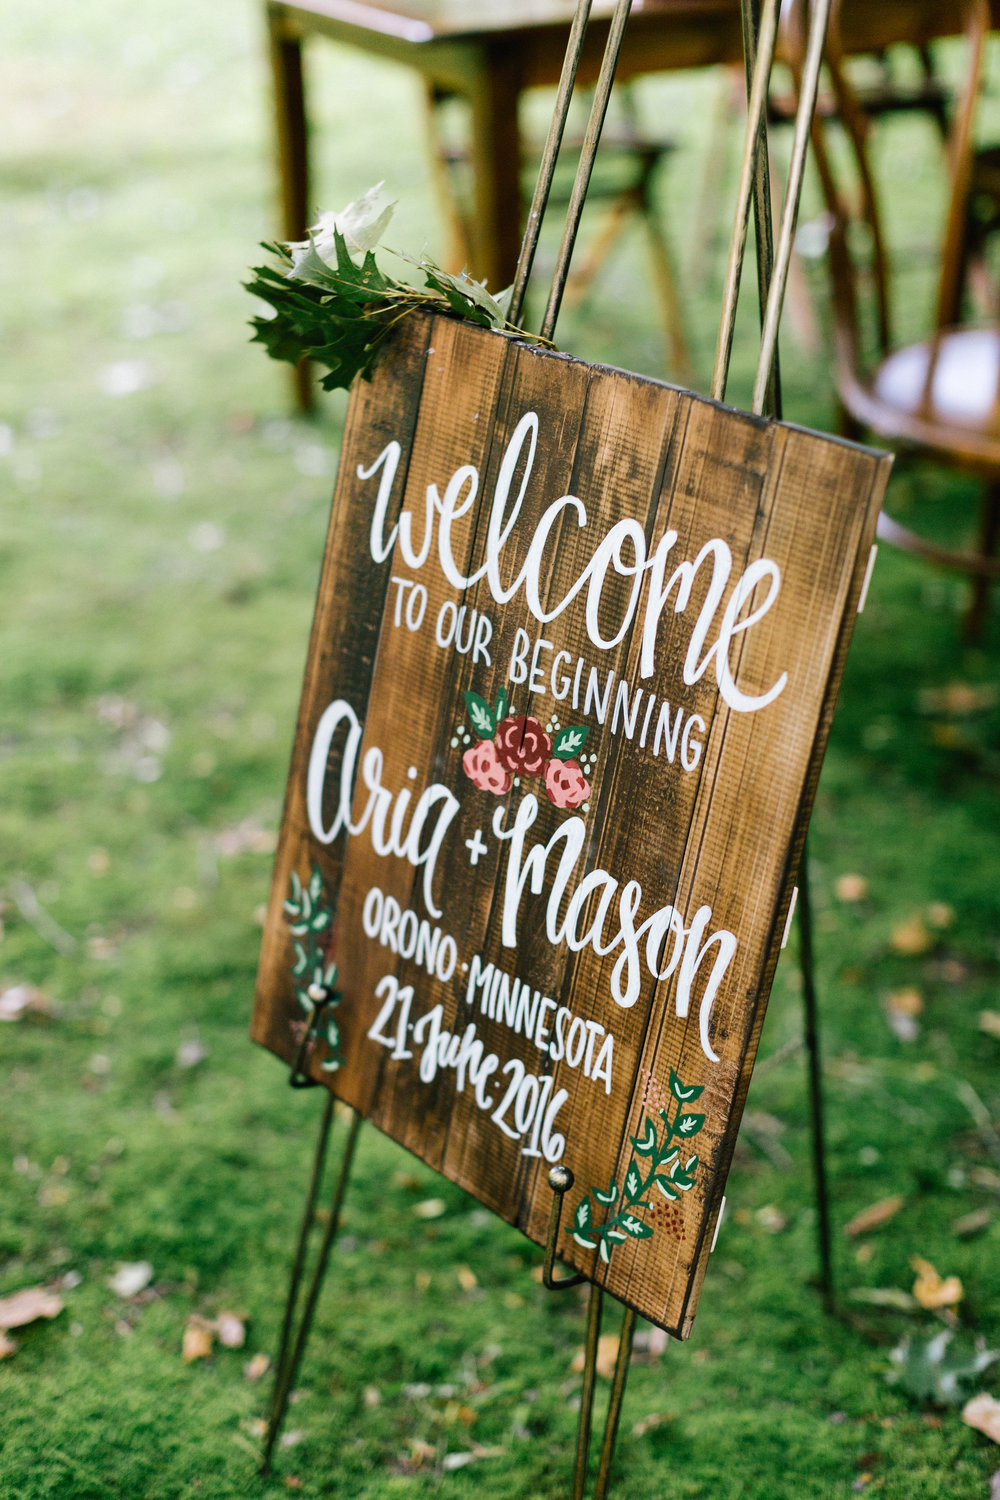 Allison_Hopperstad_Photography_Acowsay_Wedding_Signage.JPG